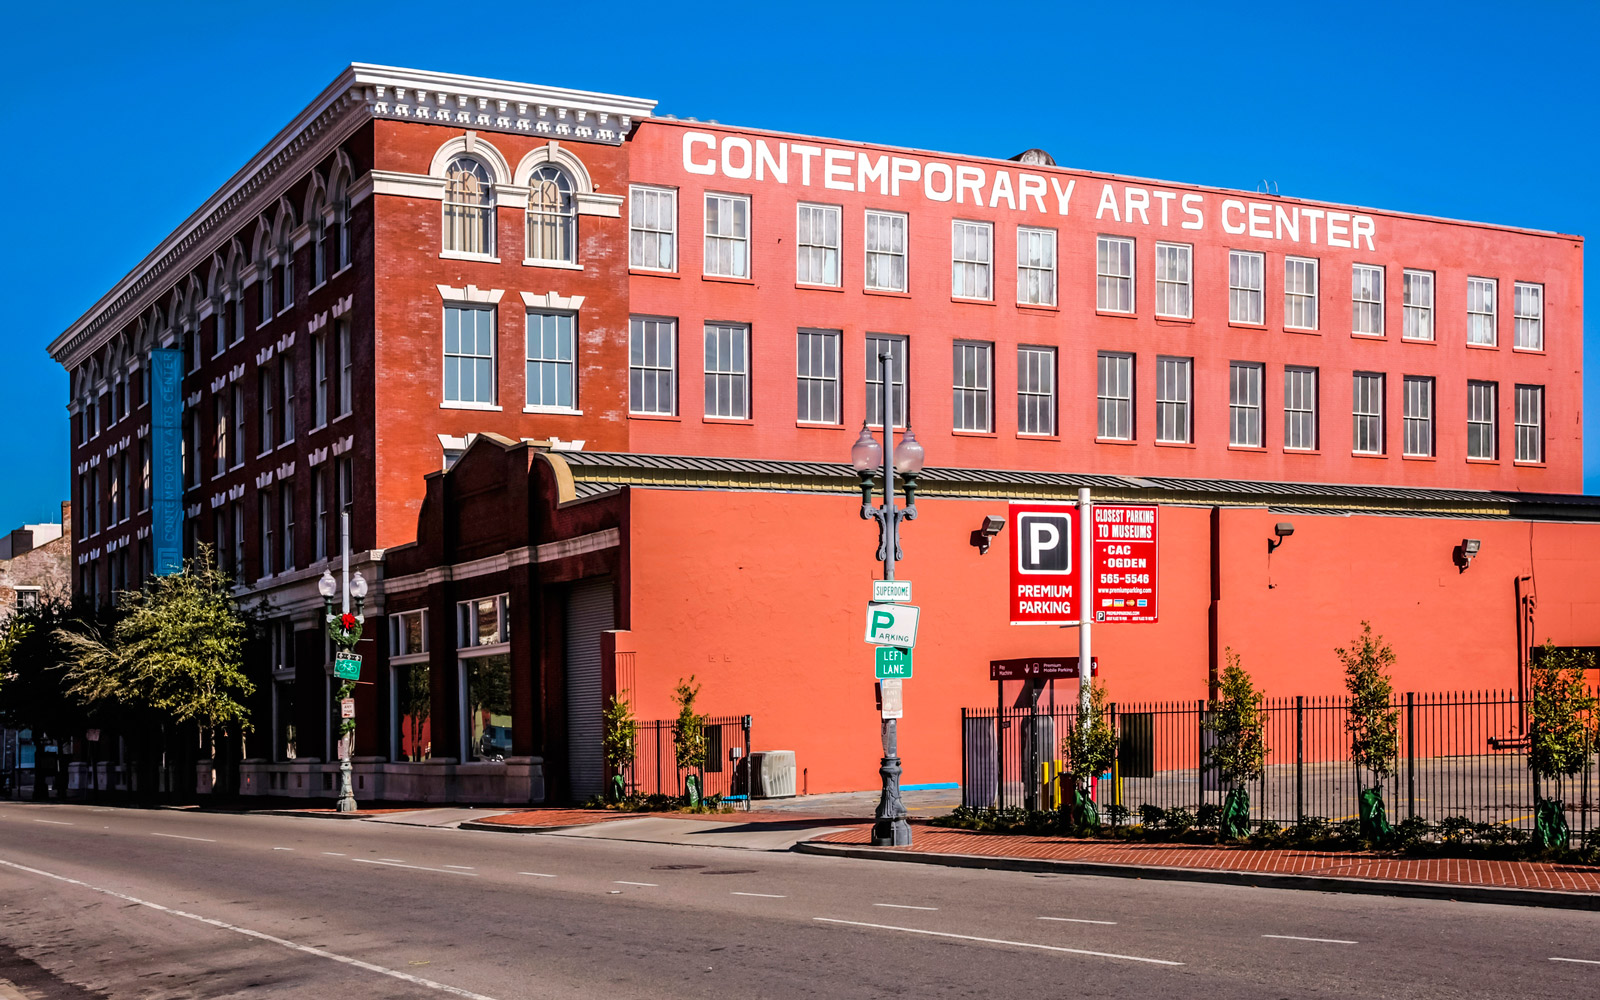 The Contemporary Arts Center in the Warehouse/Arts district of New Orleans Louisiana, USA